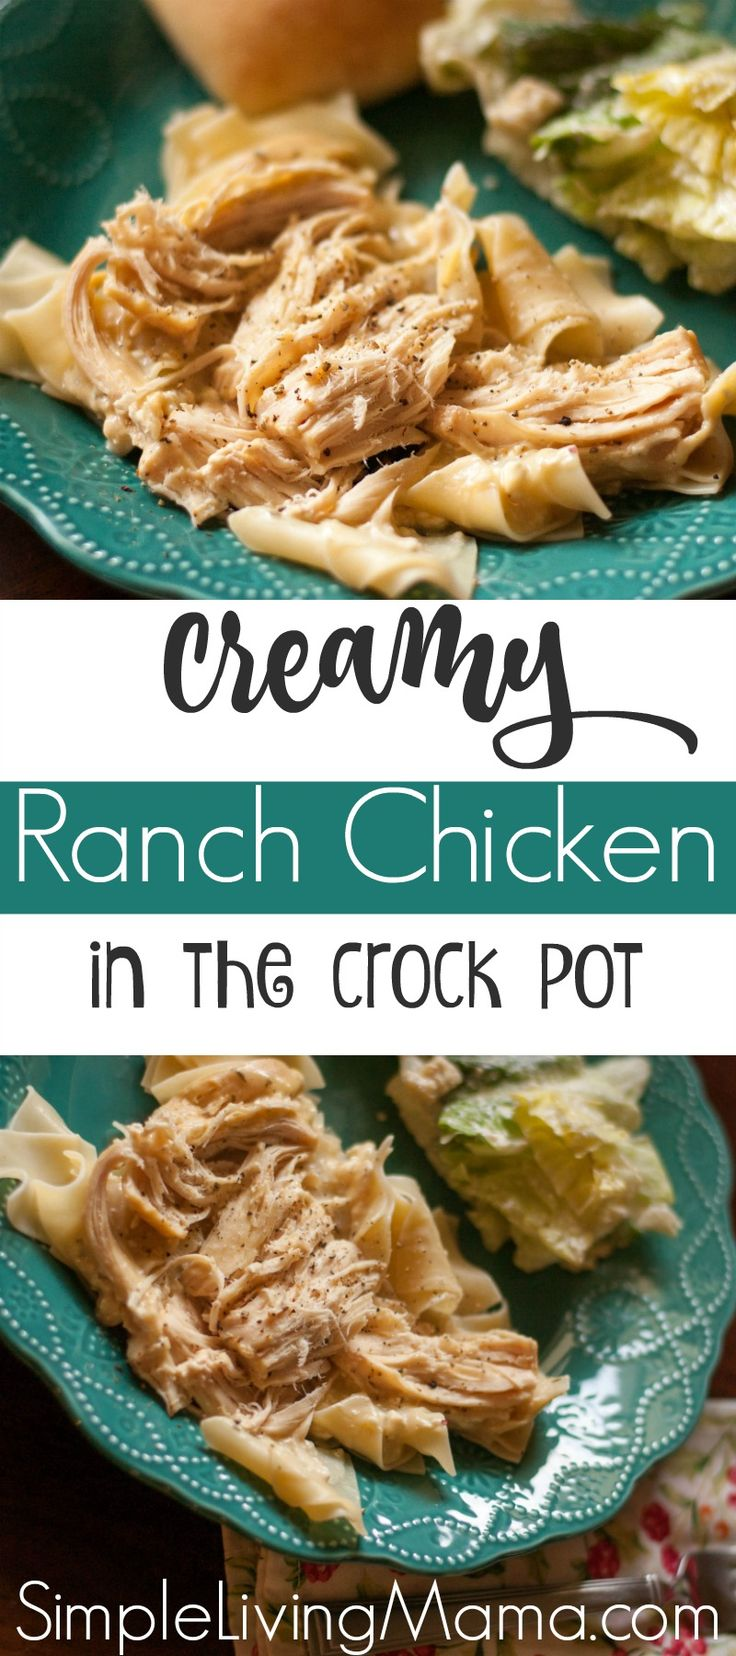 This crockpot chicken is made with a ranch packet and cream cheese to create the perfect weeknight meal that your family will ask for over and over again!